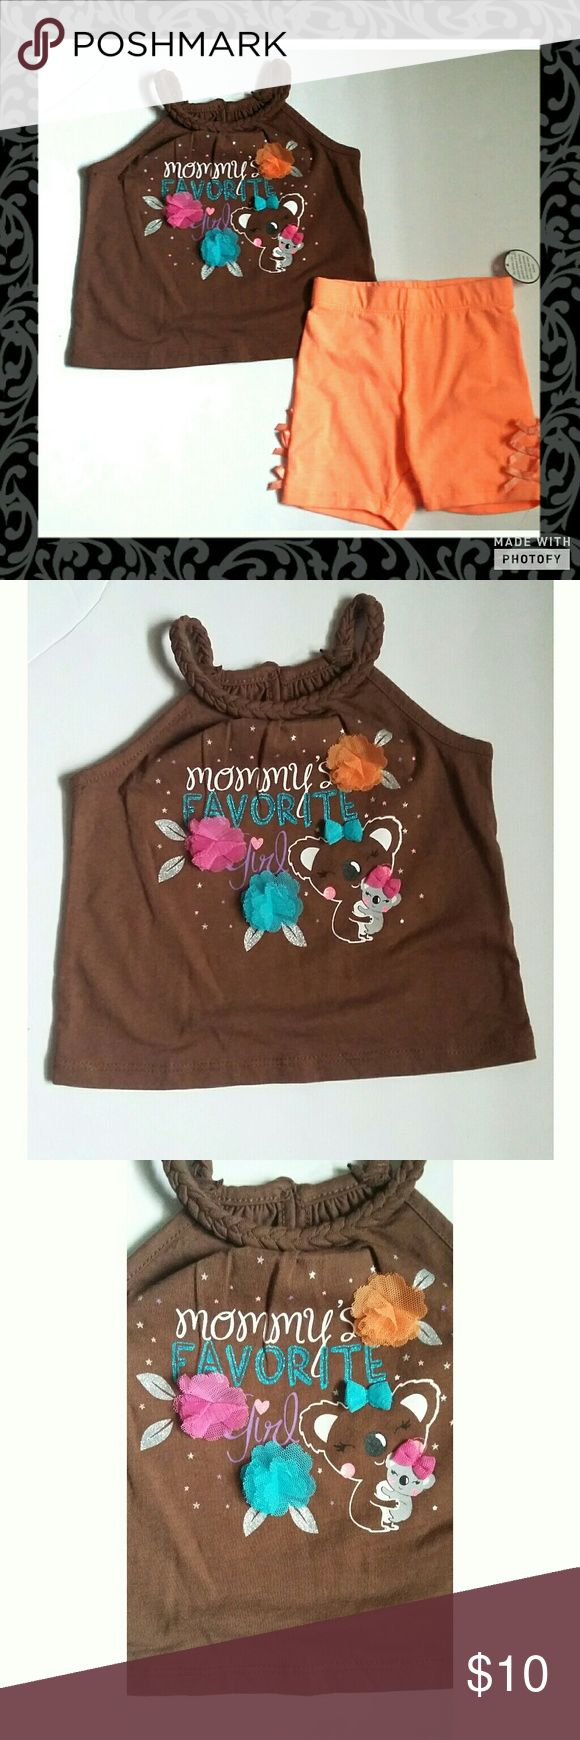 🌟20% Off 2🌟Mommy's Favorite Girl Outfit Come with thin strap braded top and bike shorts. Top says mommy's favorite girl with a mommy and baby kola on it. Bike shorts are orange with little bows on the sides. New without tags. Wonder kids brand. Size 12 months . Polyester cotton blend material Wonder kids  Matching Sets